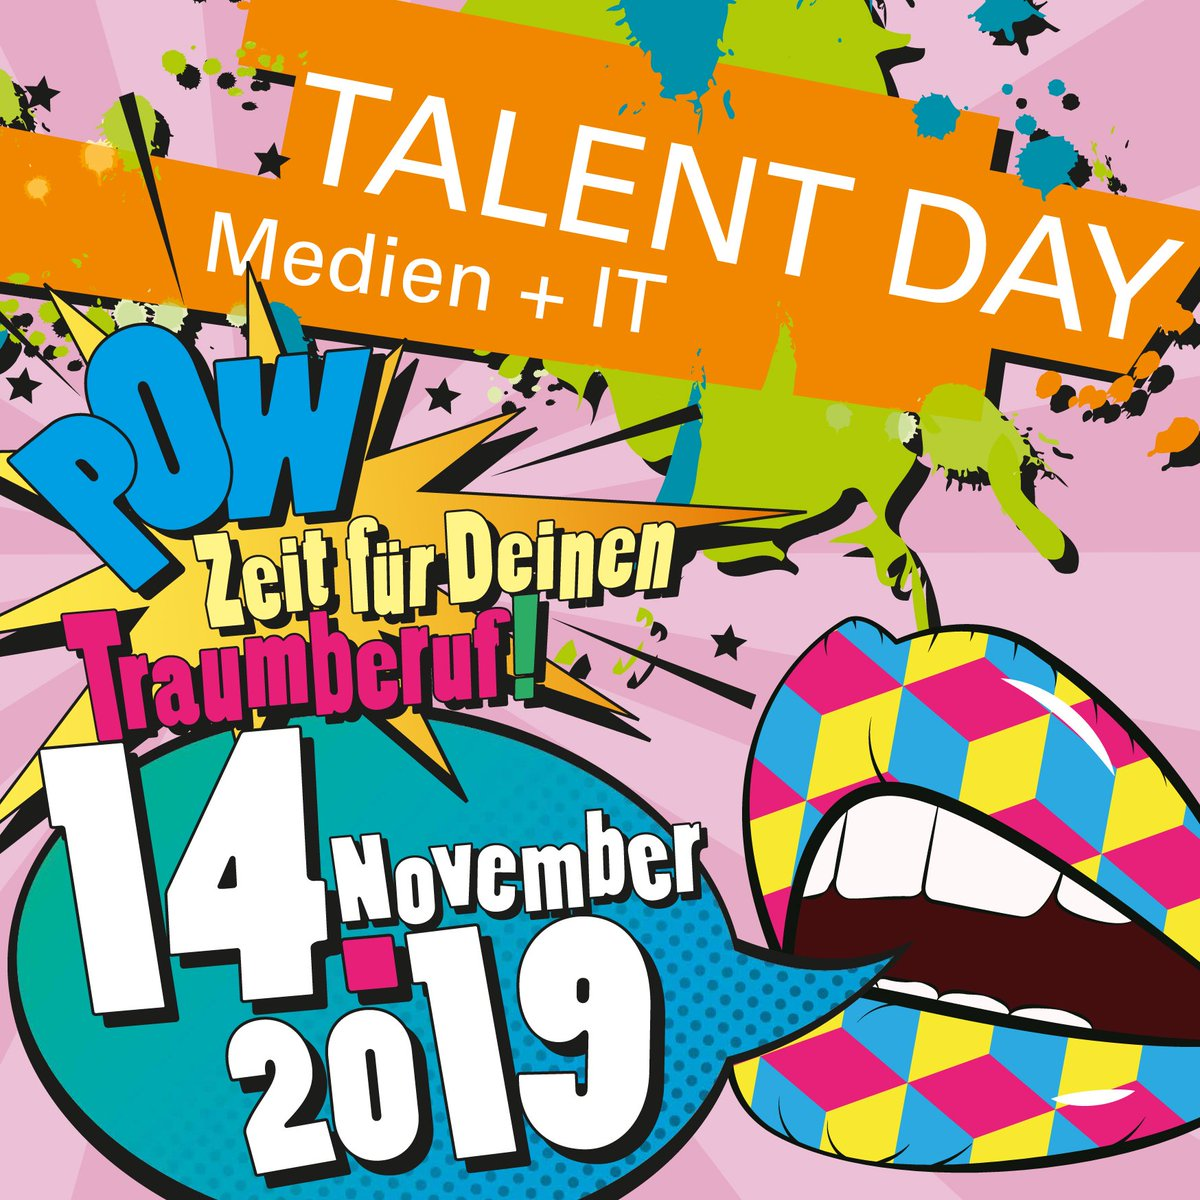 talentday2019 photo